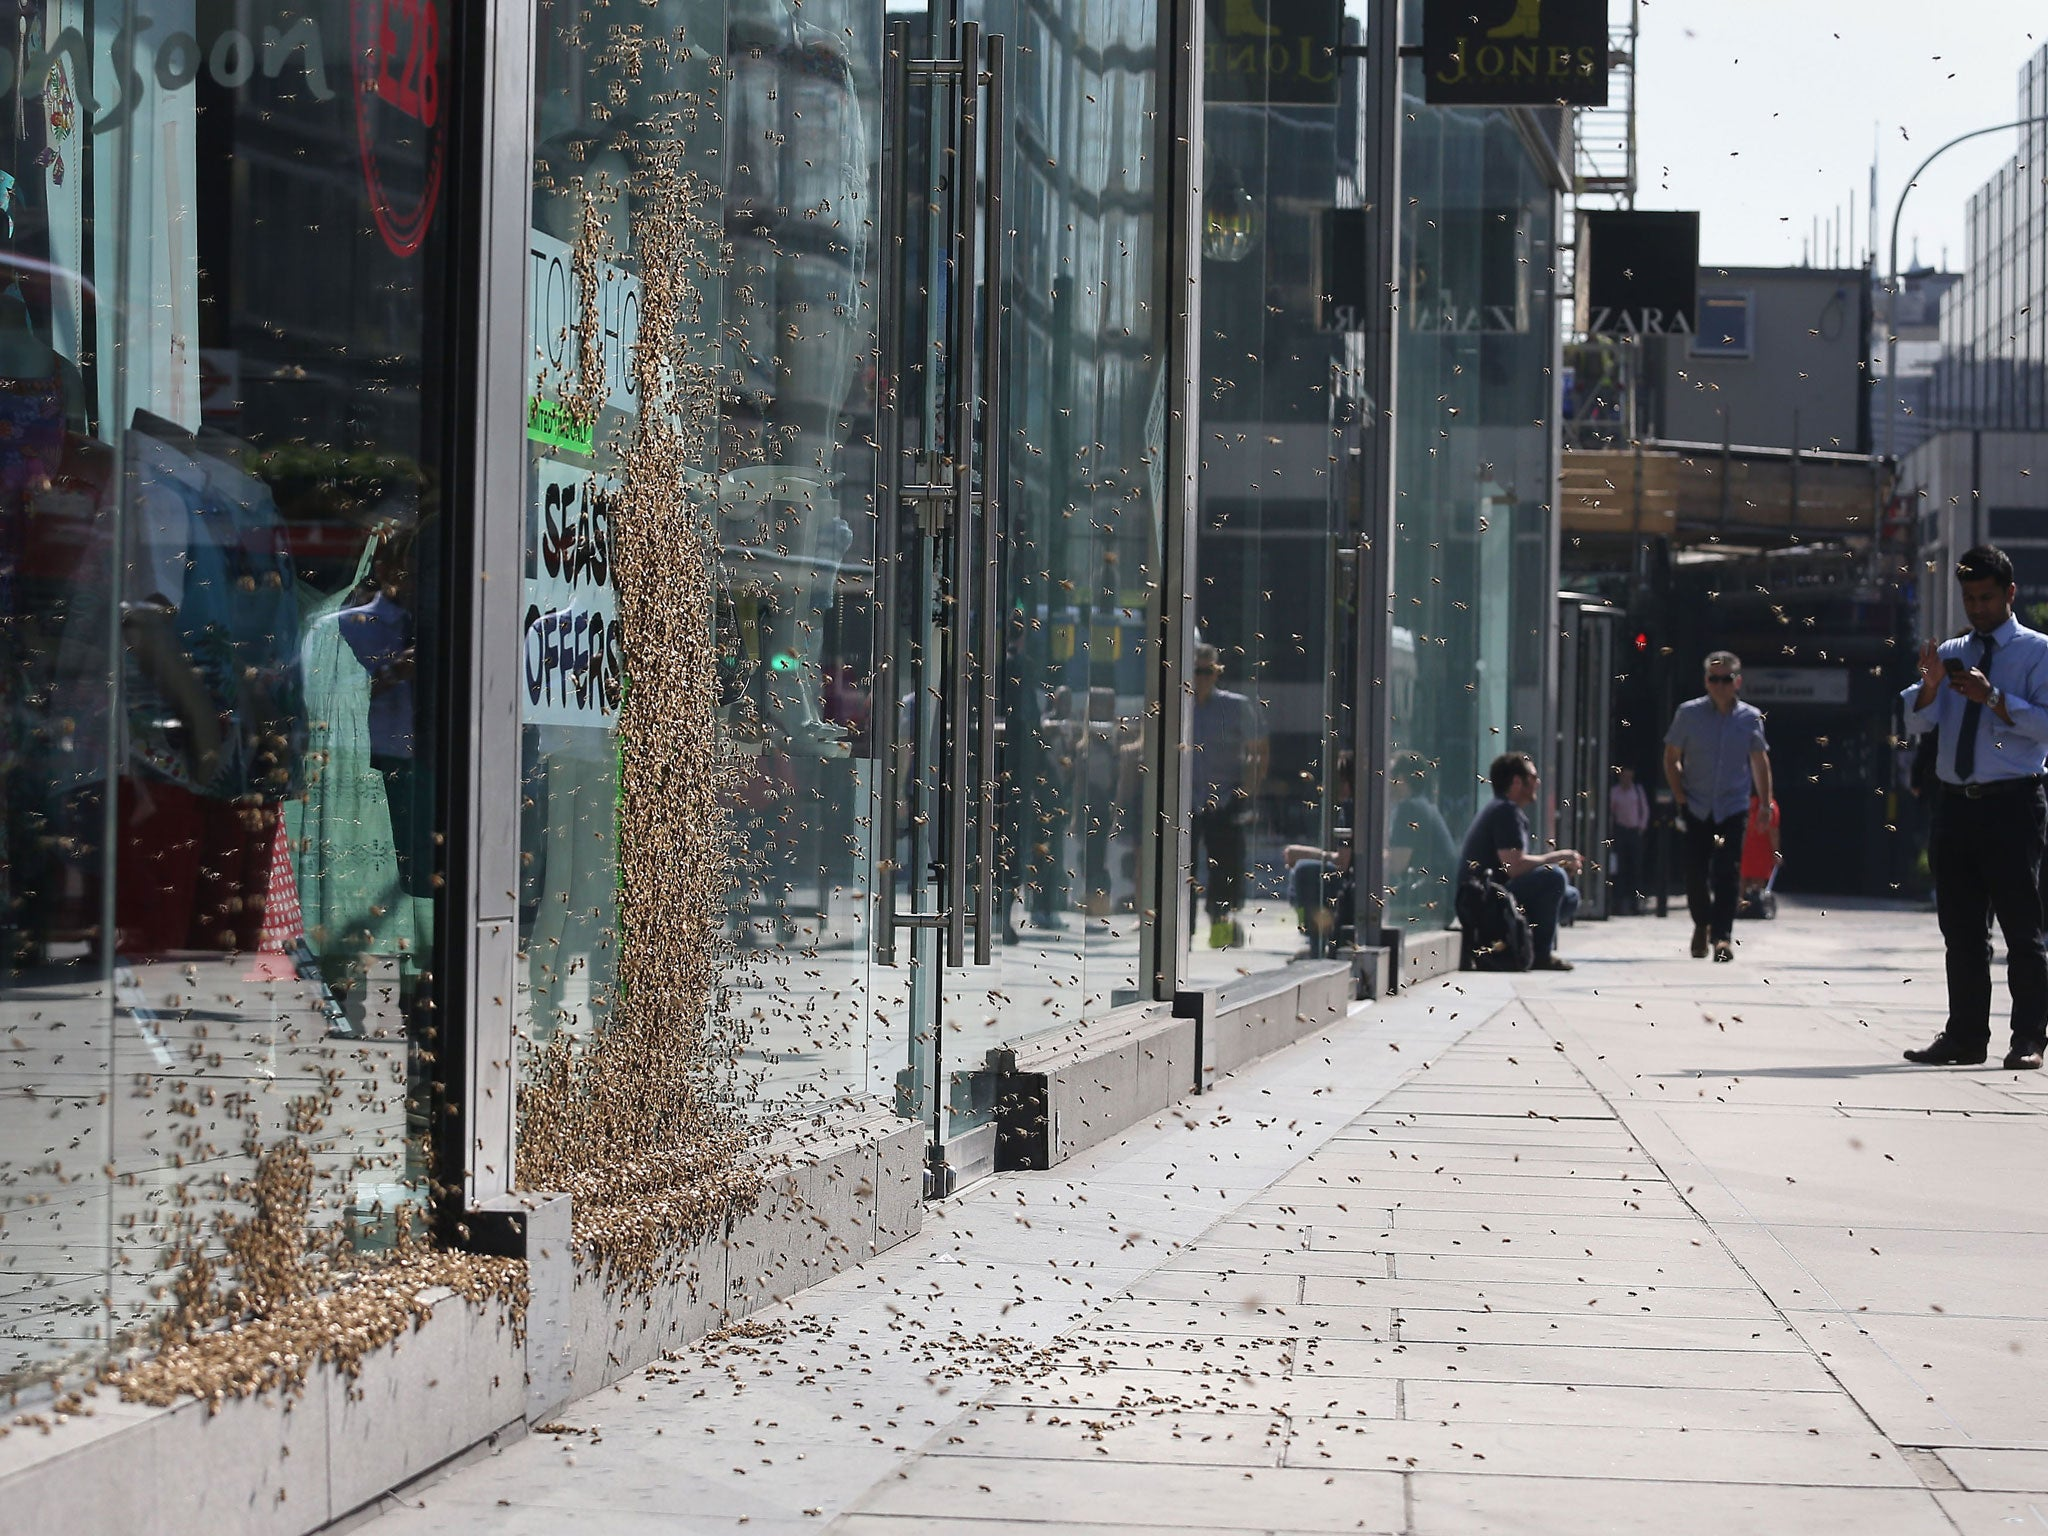 Swarms of flies plaguing residents in Cardiff traced to